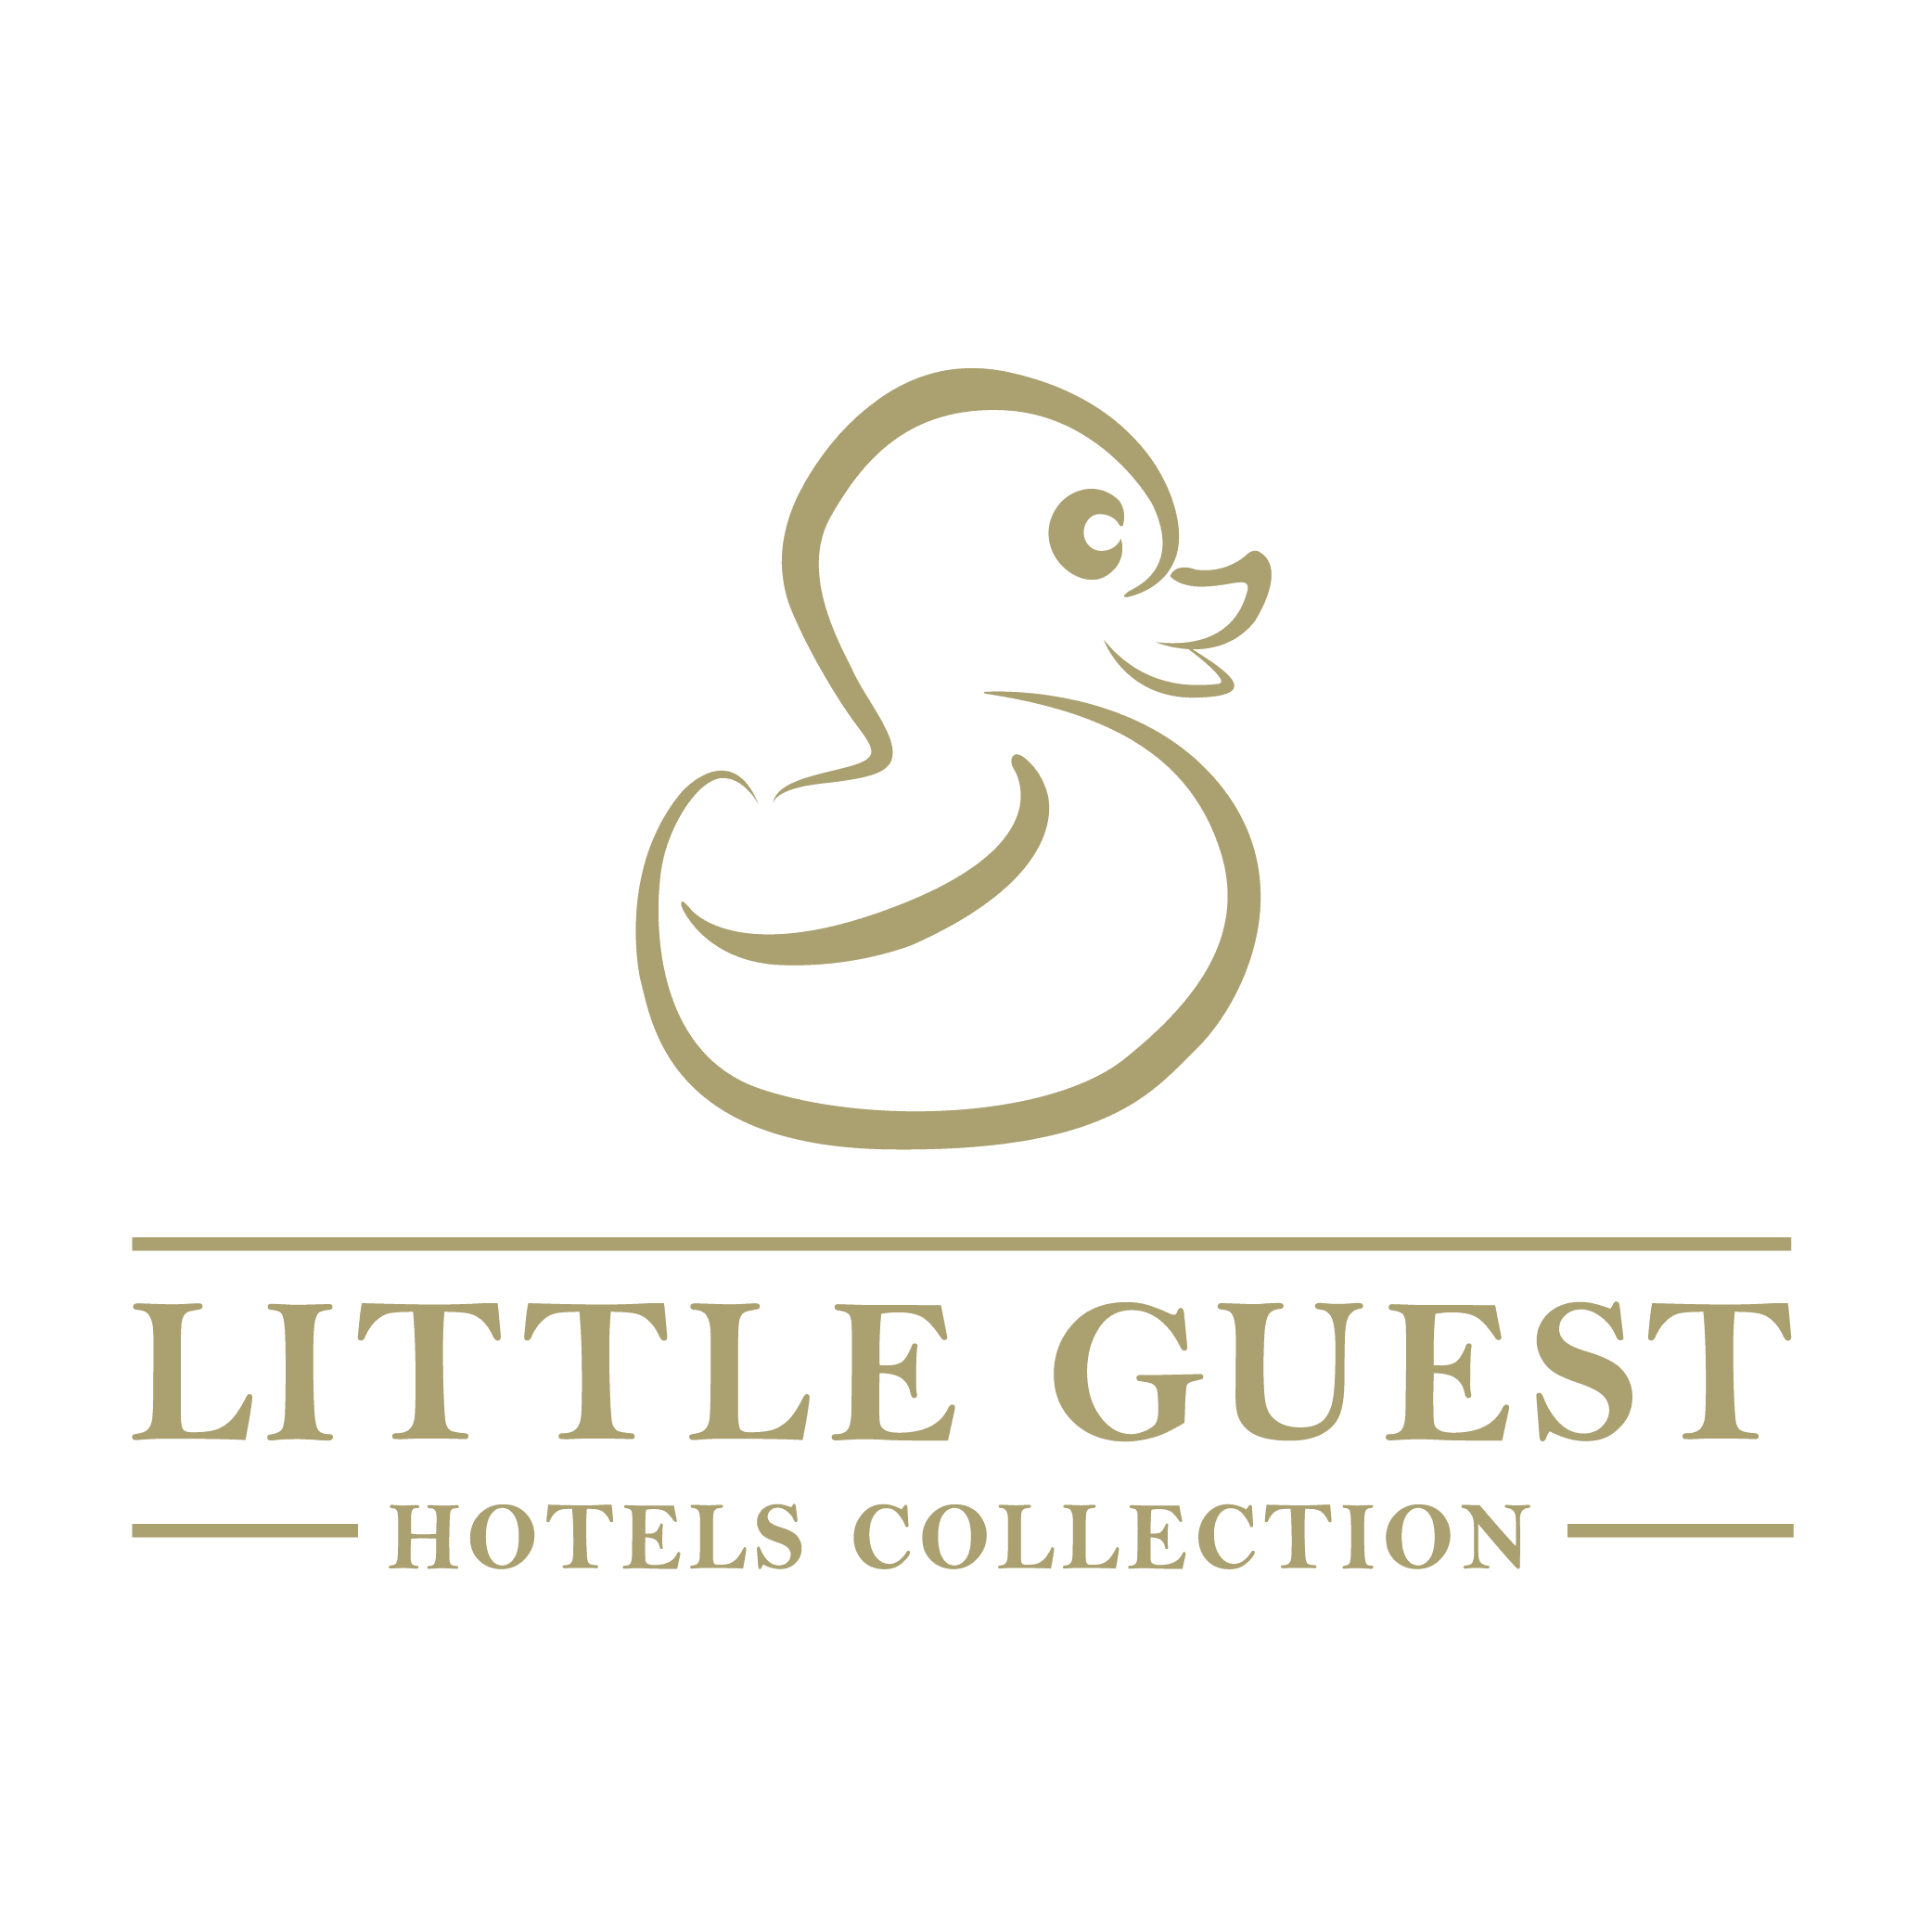 The Little Guest Hotels Collection